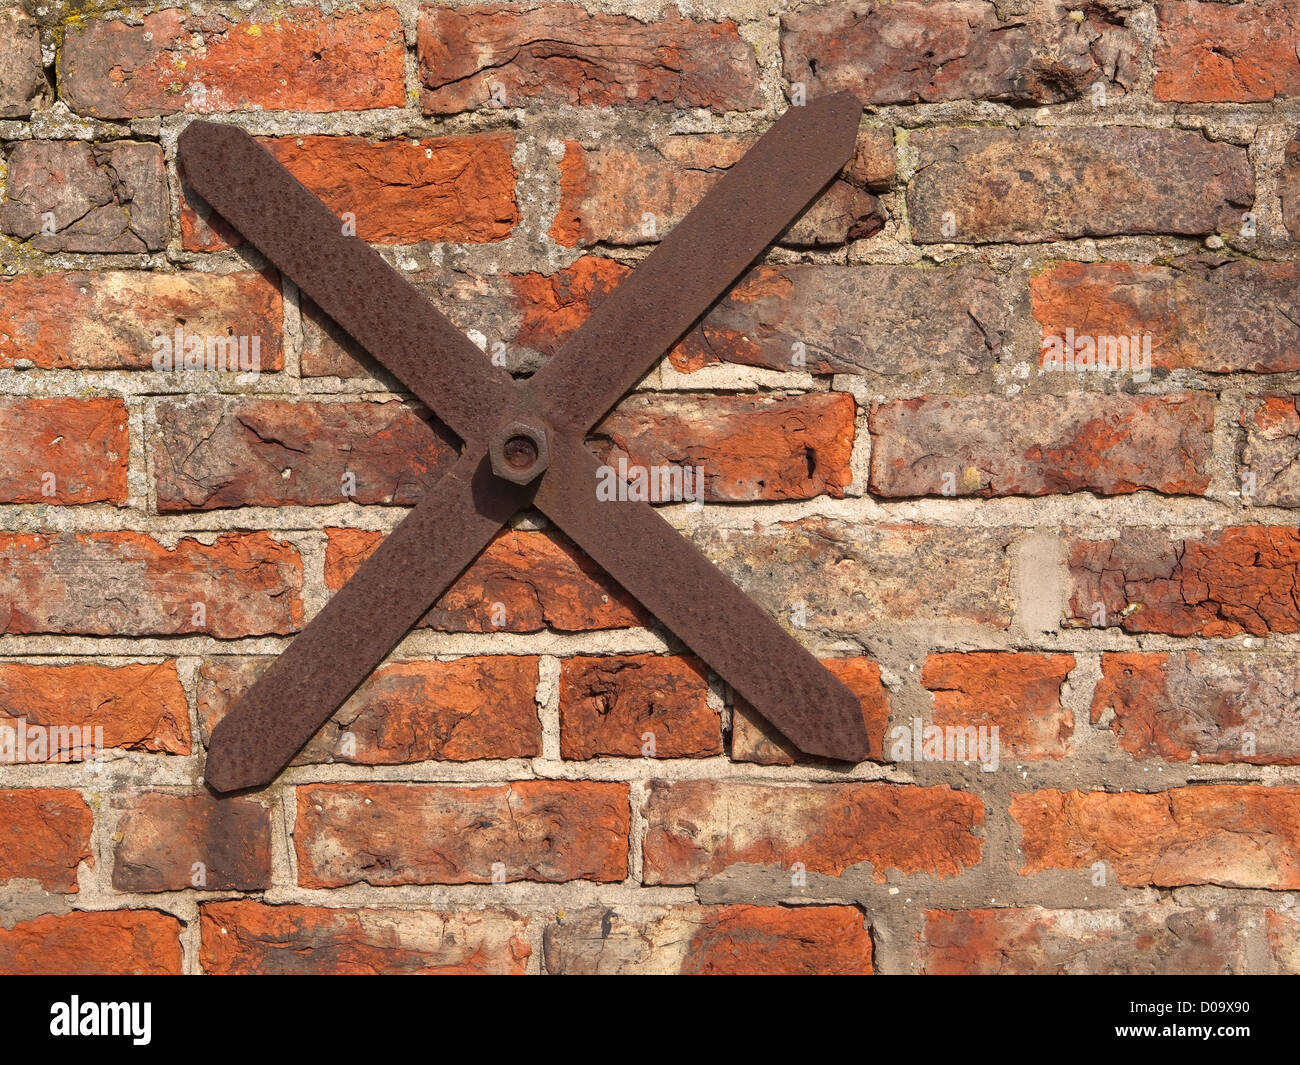 an old red brick wall with a rusty cross shaped iron tie bar stock photo royalty free image. Black Bedroom Furniture Sets. Home Design Ideas